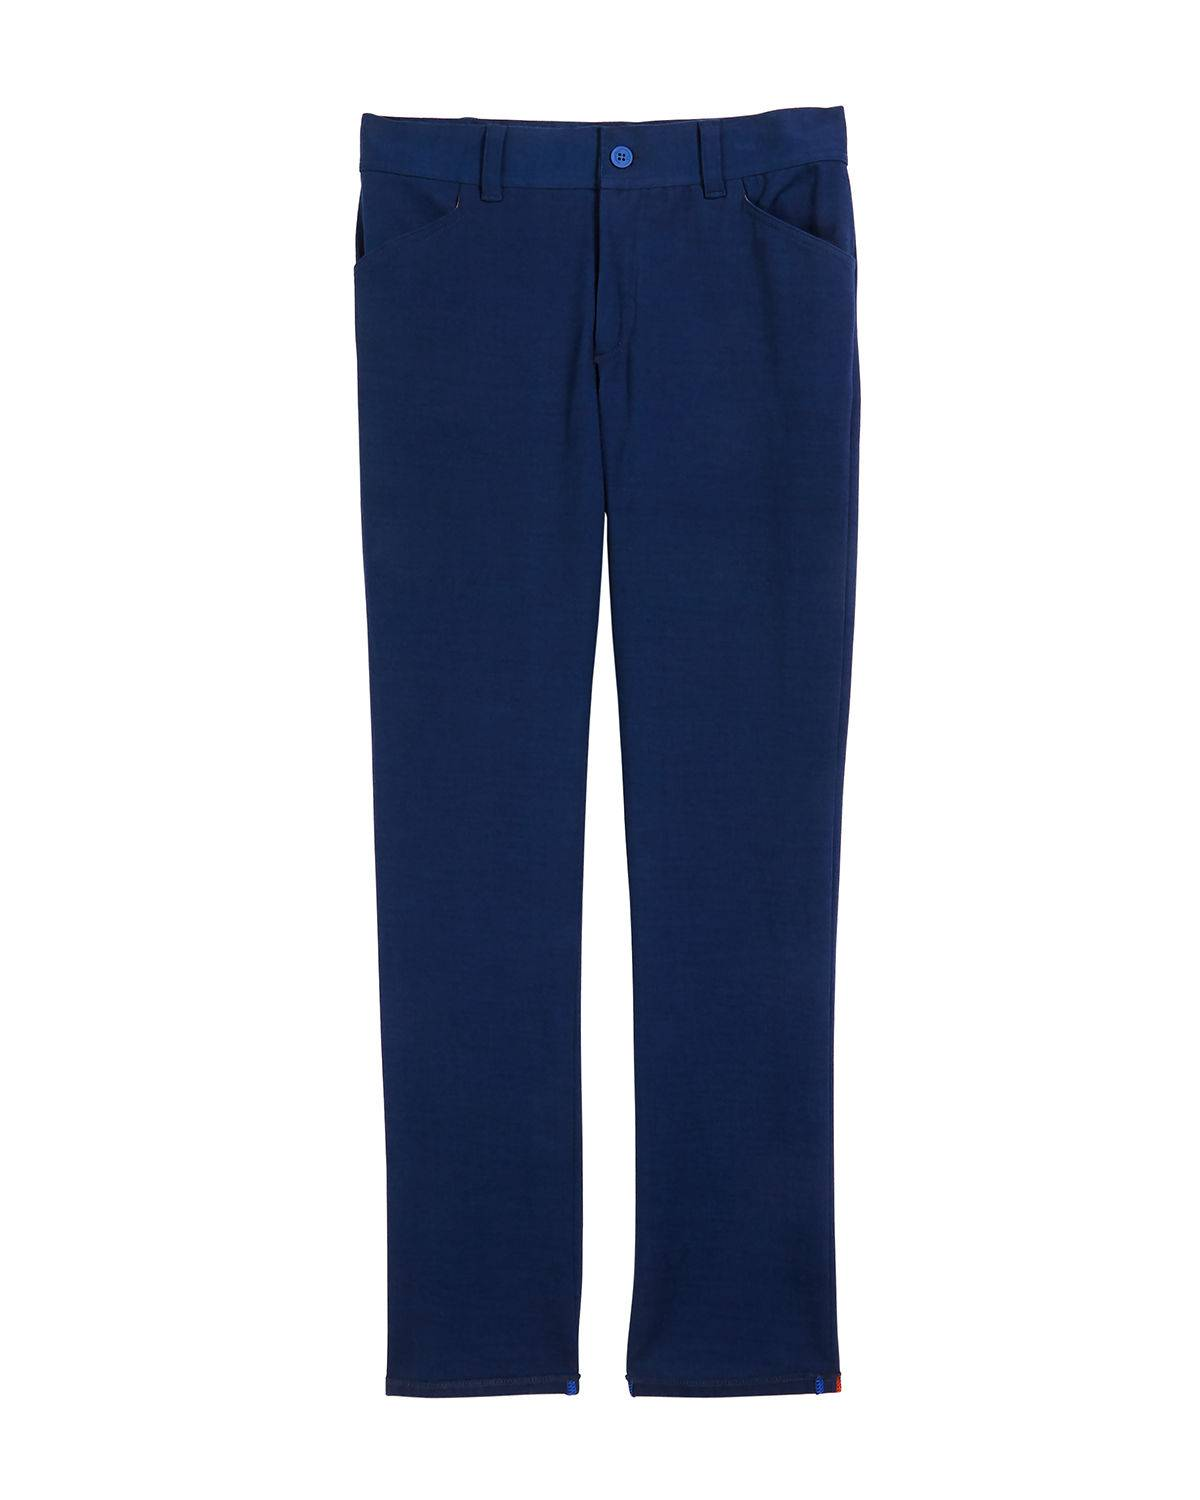 Stefano Ricci Boys' Sport Trousers, Size 10-14 - Size: 10